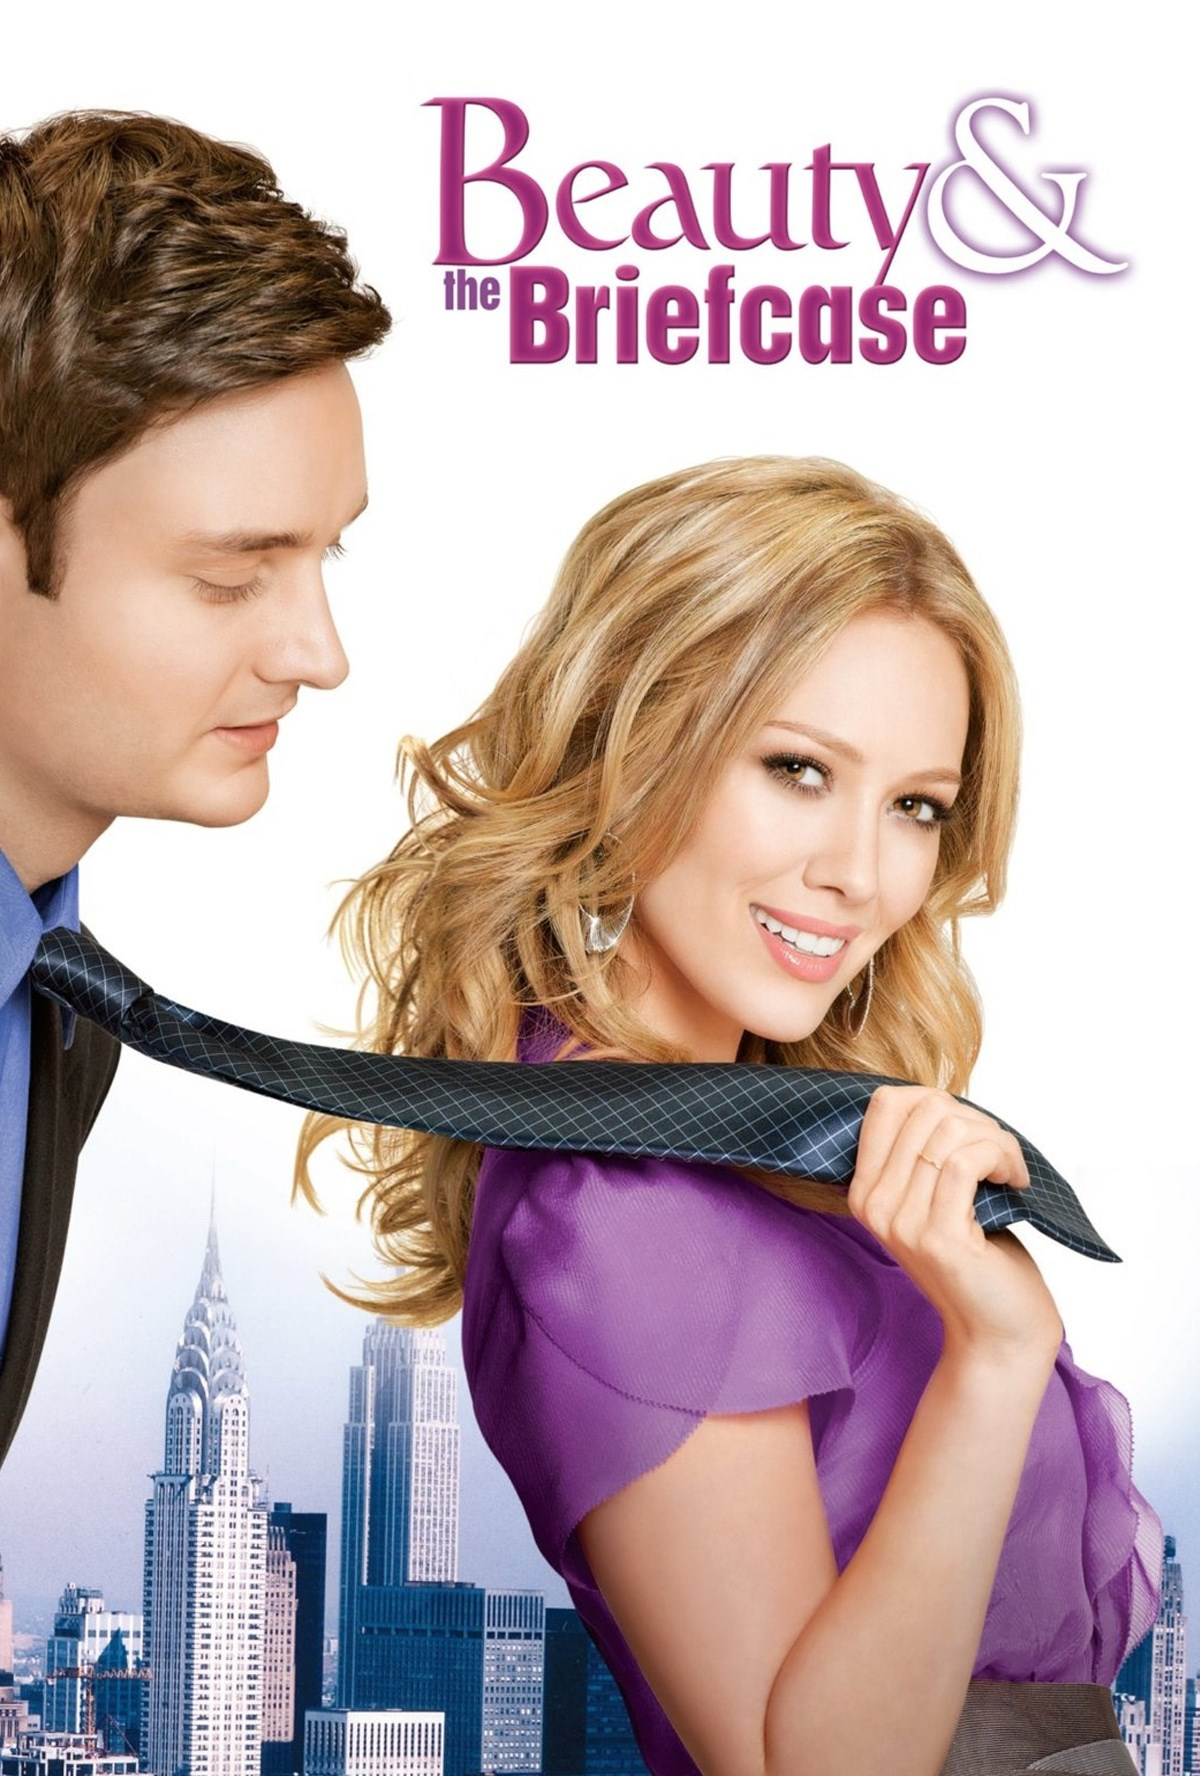 Subtitles For Beauty And The Briefcase